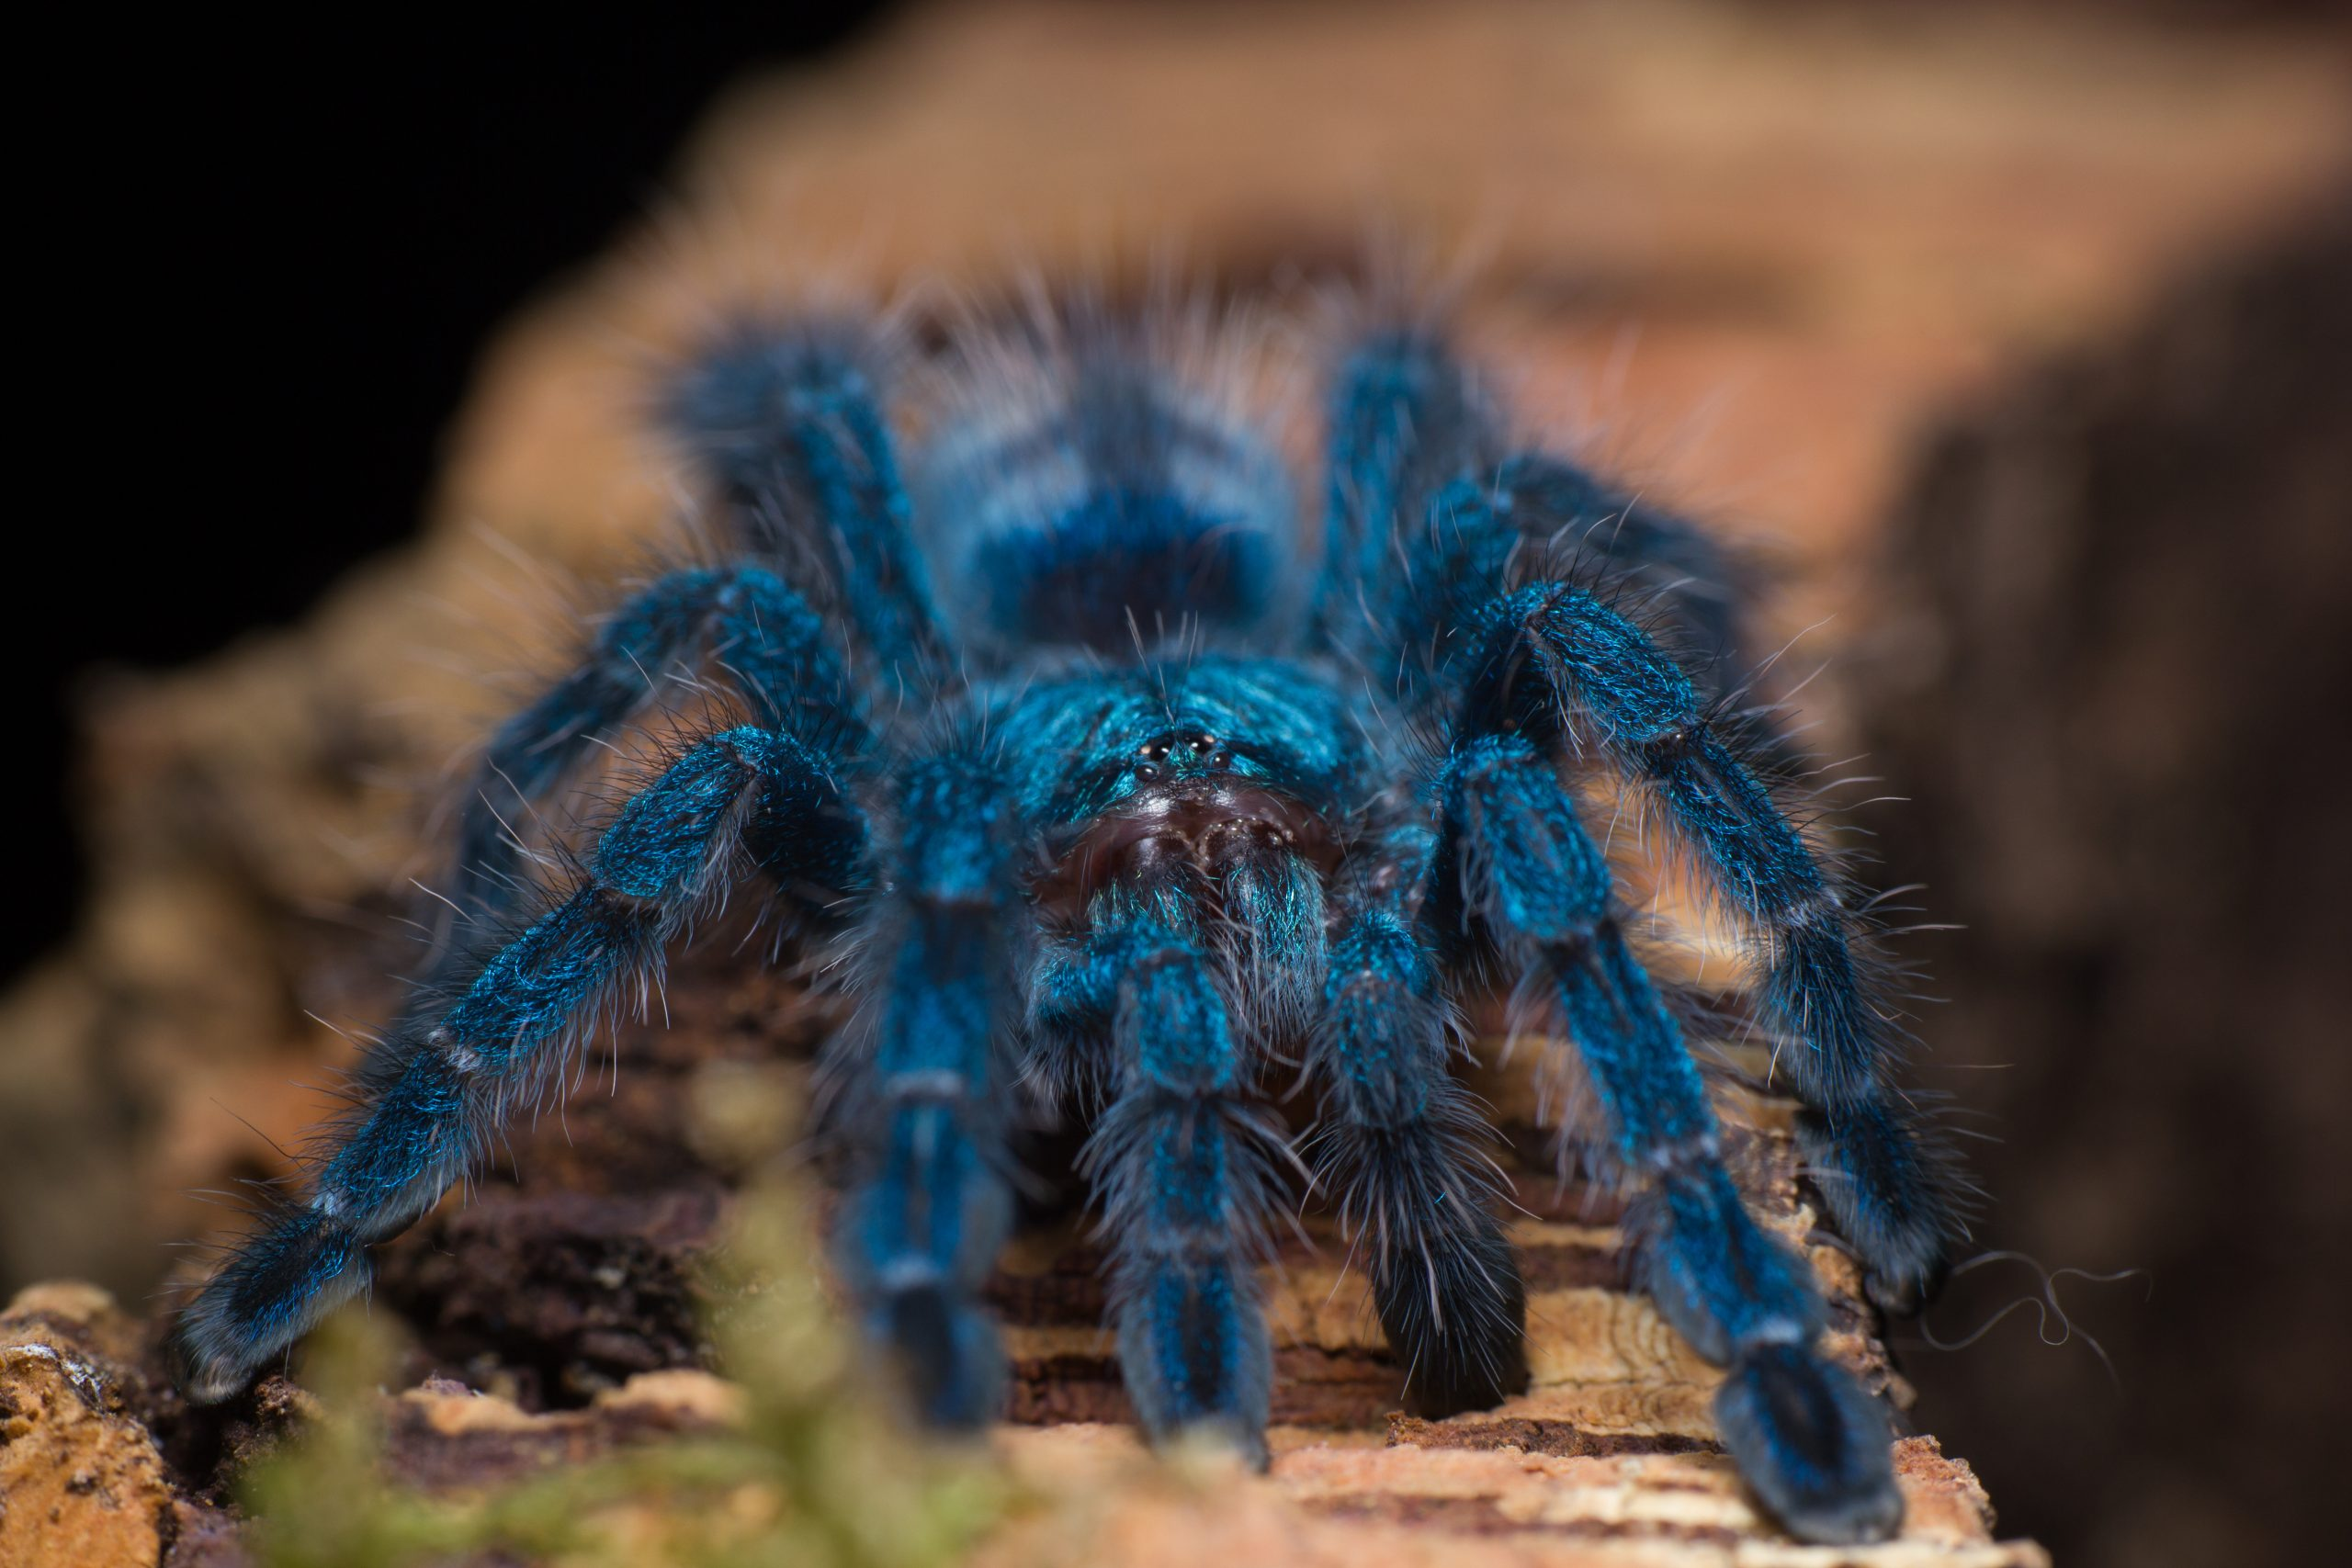 Dr Vinod Kumar and Dr Saoirse Foley discover why tarantulas come in vivid blues and greens